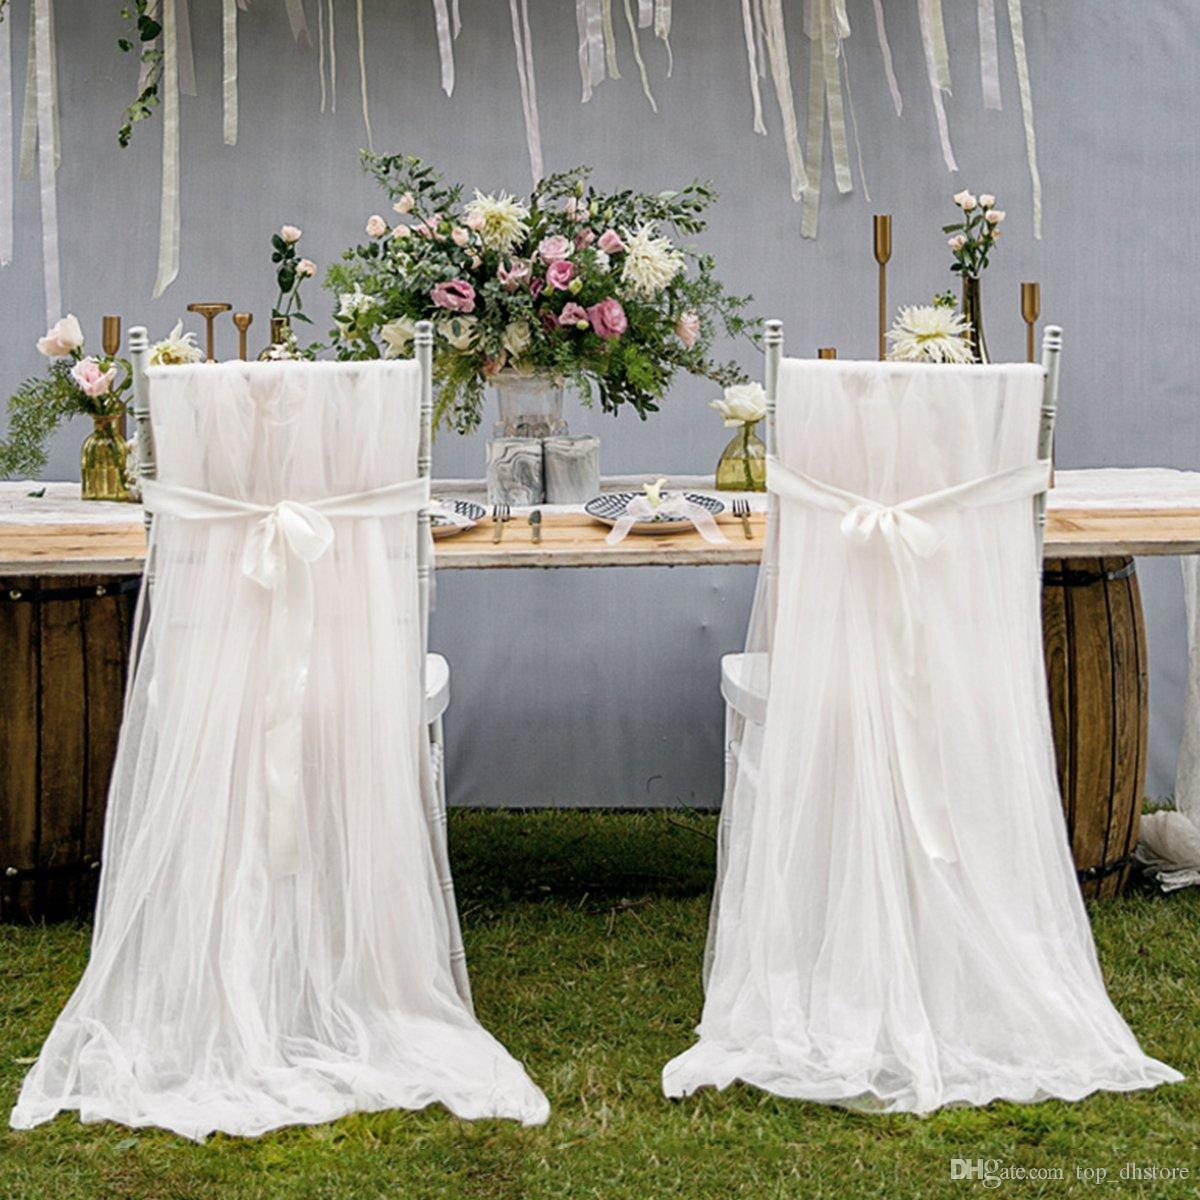 Chiffon Wedding Chair Covers With Sashes Romantic Chair Cover Decortive Long Tulle High Chair Skirt Slipcovers Wedding Supplies WCS01 Dining Room Chair Seat ... & Chiffon Wedding Chair Covers With Sashes Romantic Chair Cover ...